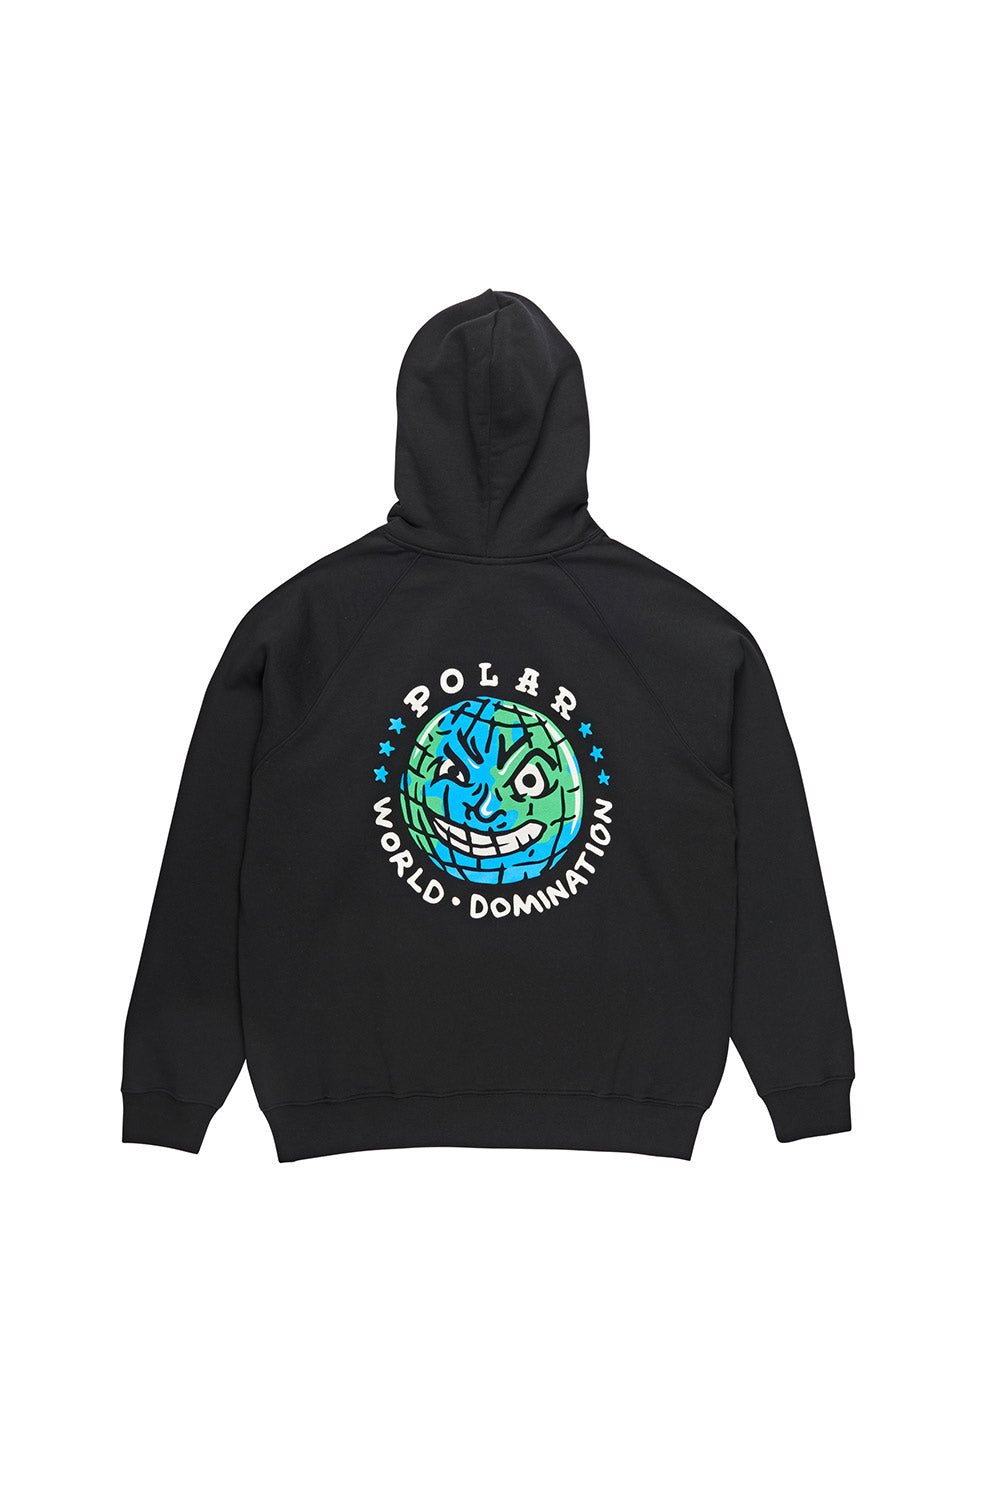 Polar Skate Co P.W.D Hoodie - Black | Buy Polar Skate Co Online